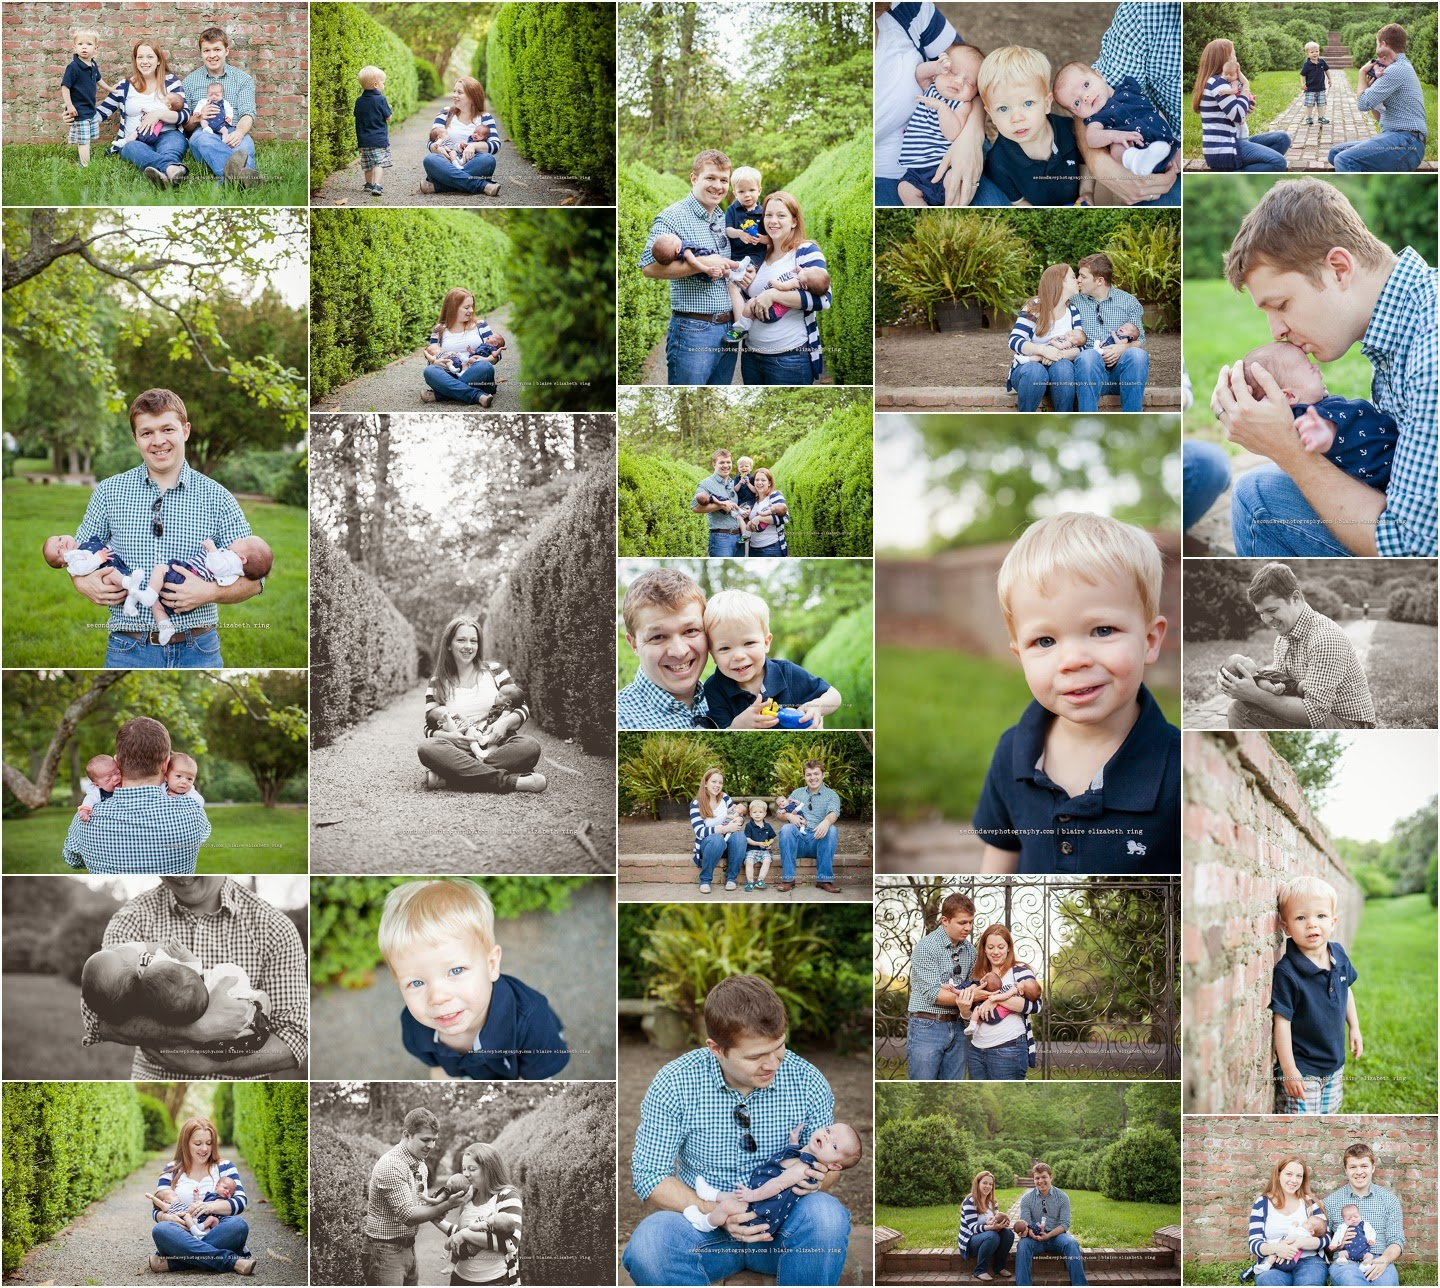 morven park, family photographer, newborn photographer, lifestyle photography, Virginia photographer, loudoun county, leesburg va, twins,